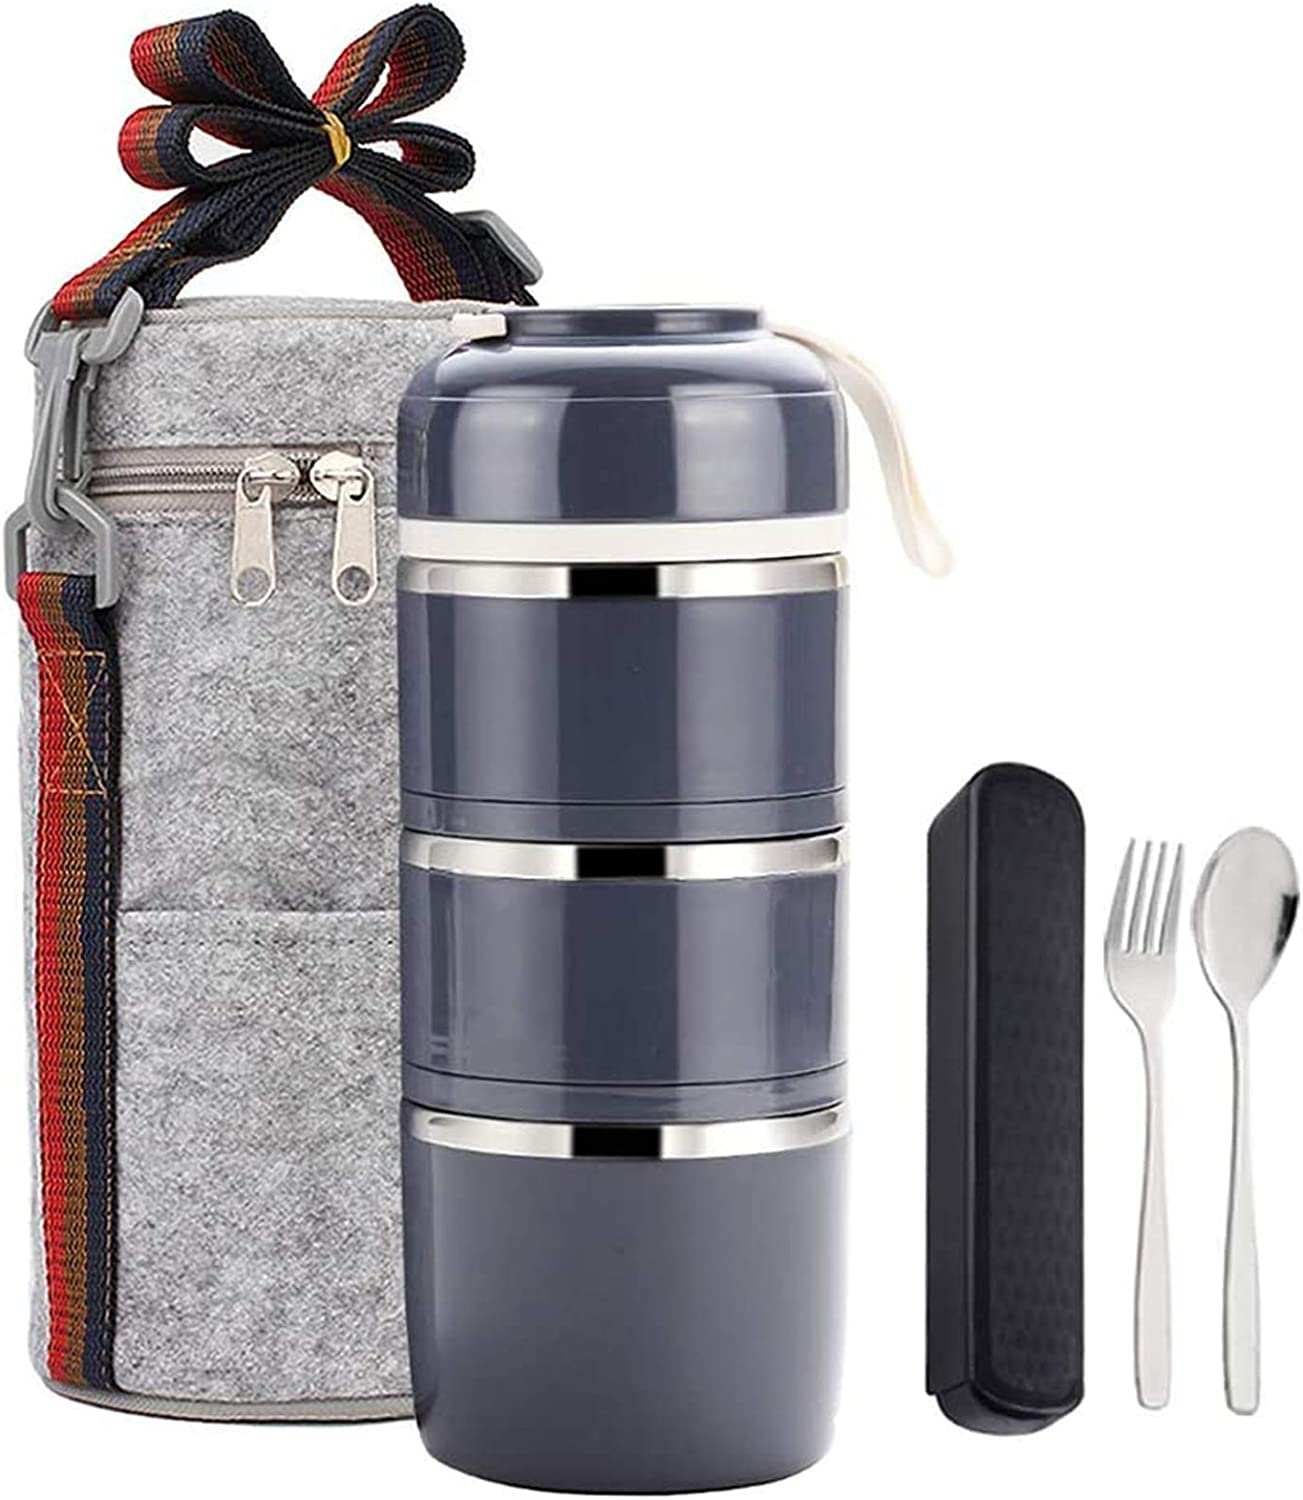 Bento Lunch Box Stackable Lunch Containers with Insulated Lunch Bag and Portable utensil,Tiffin Lunch Box 100% Leakproof Lunch Containers for Adults Men Office(3Tier,Grey)